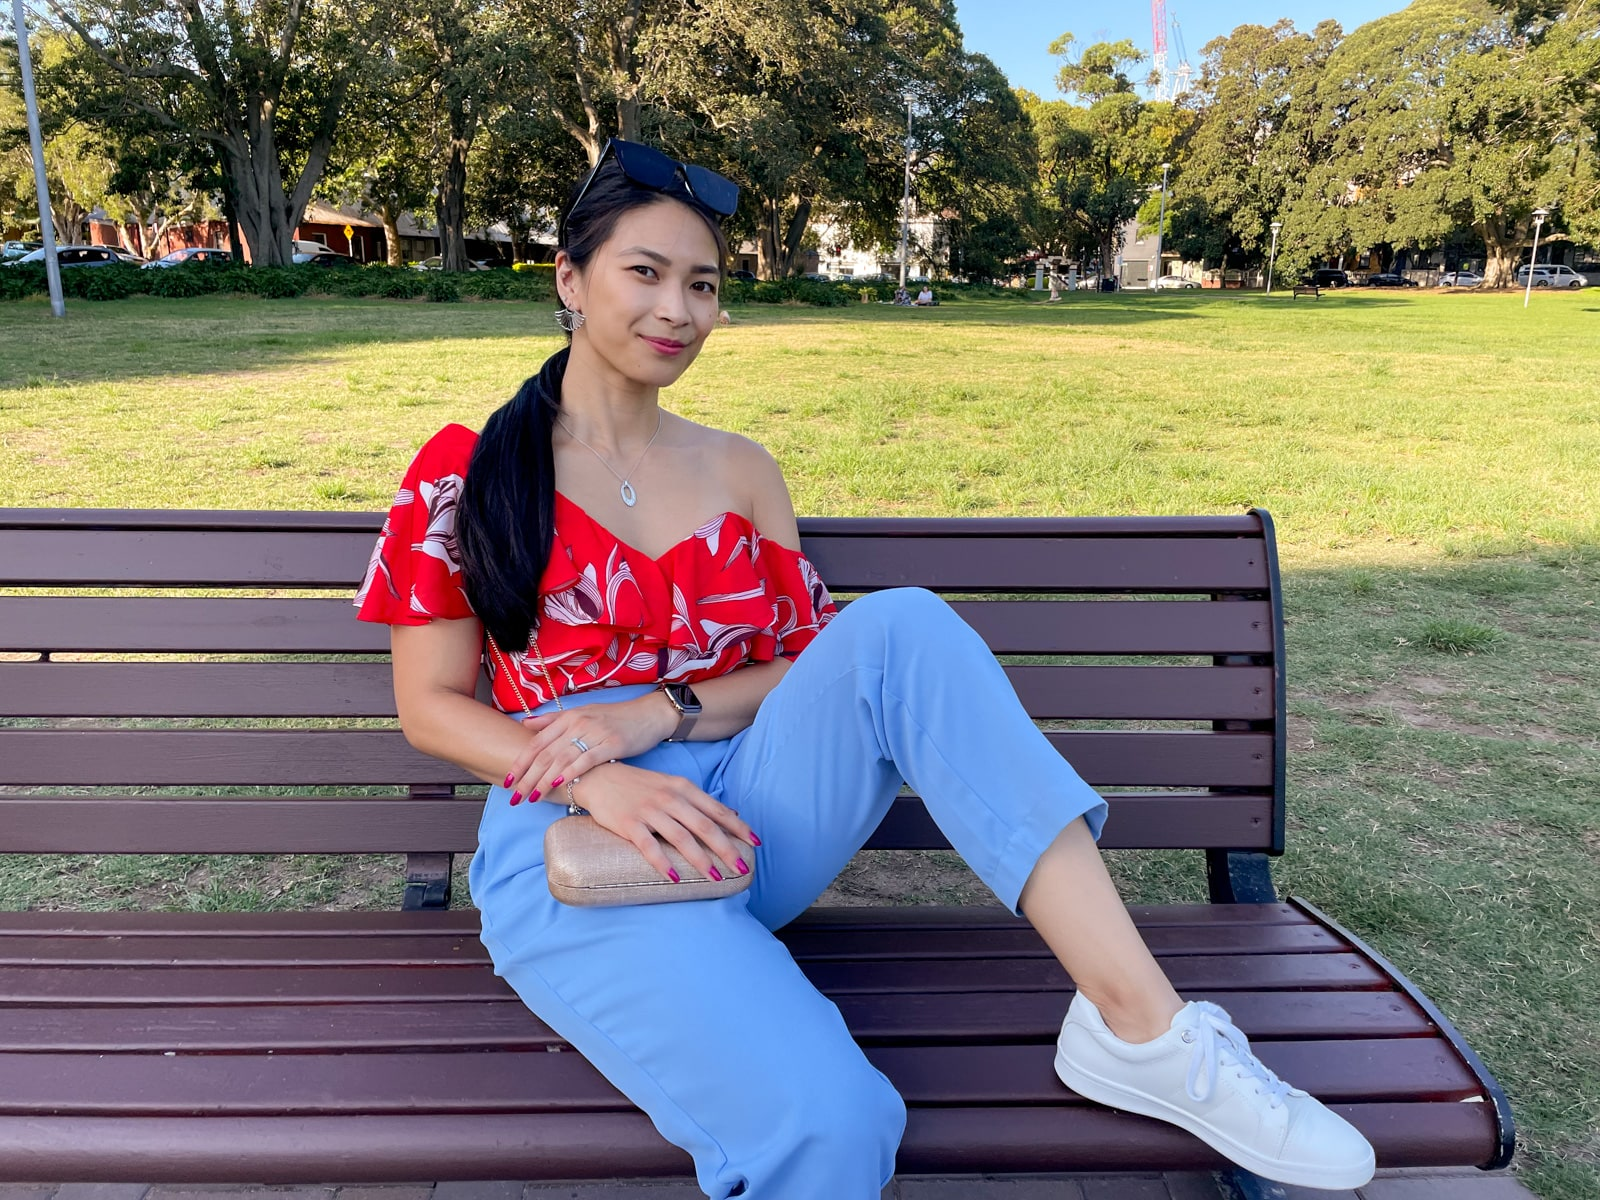 An Asian woman wearing a red top with a floral print, and blue pants, with her hair tied back in a low ponytail. She is leaning back on a bench with a gold clutch handbag in her lap. She has a foot up on the bench with her knee bent.